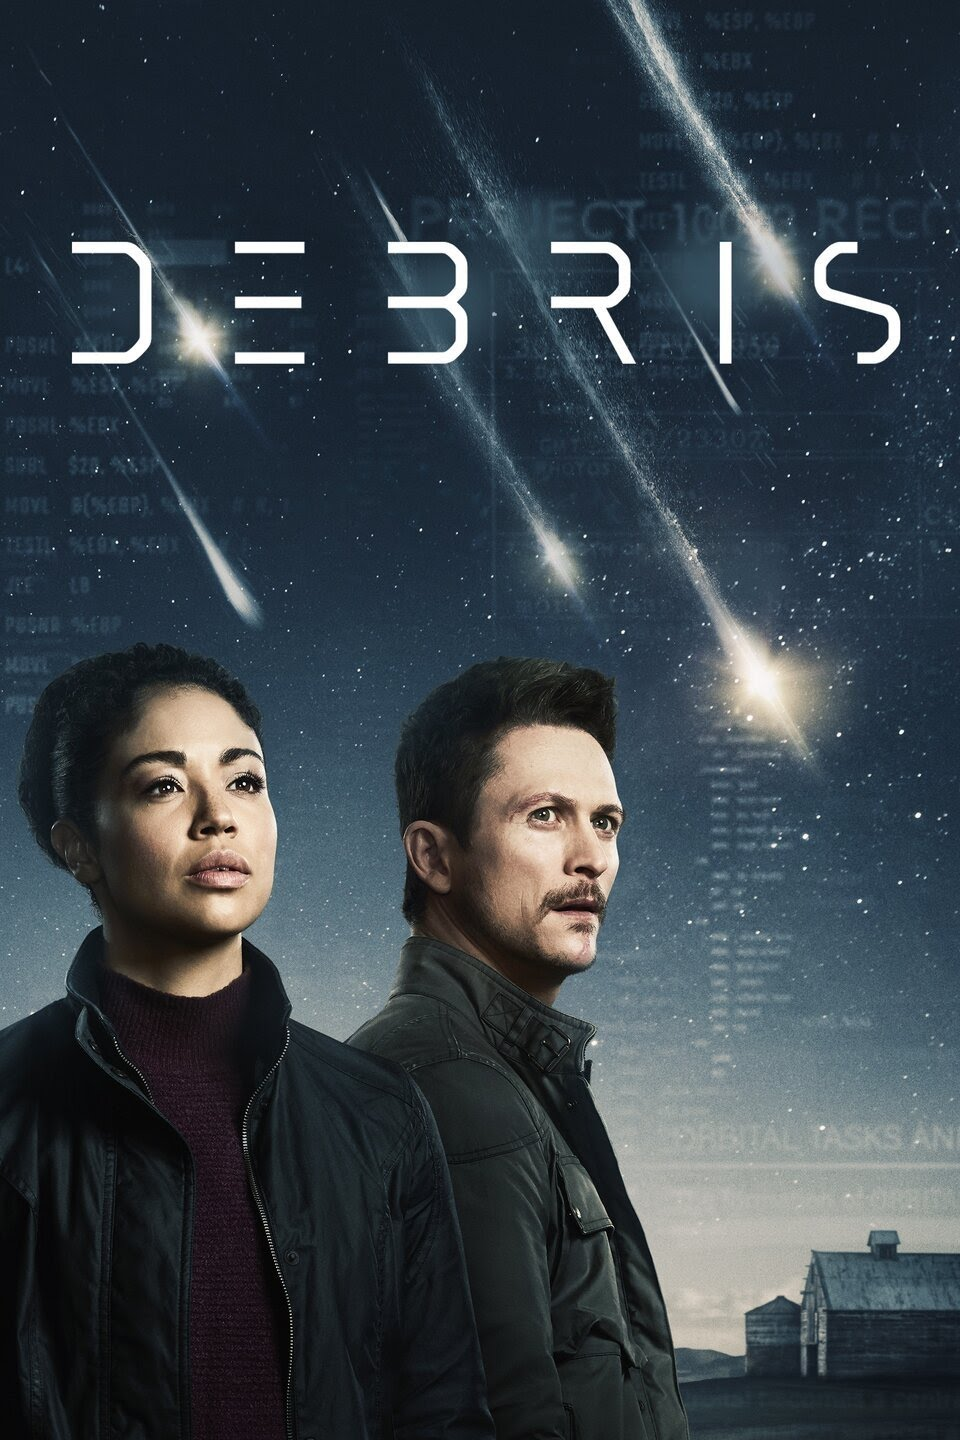 SUBTITLE: Debris Season 1 Episode 1 (S01E01) SRT DOWNLOAD